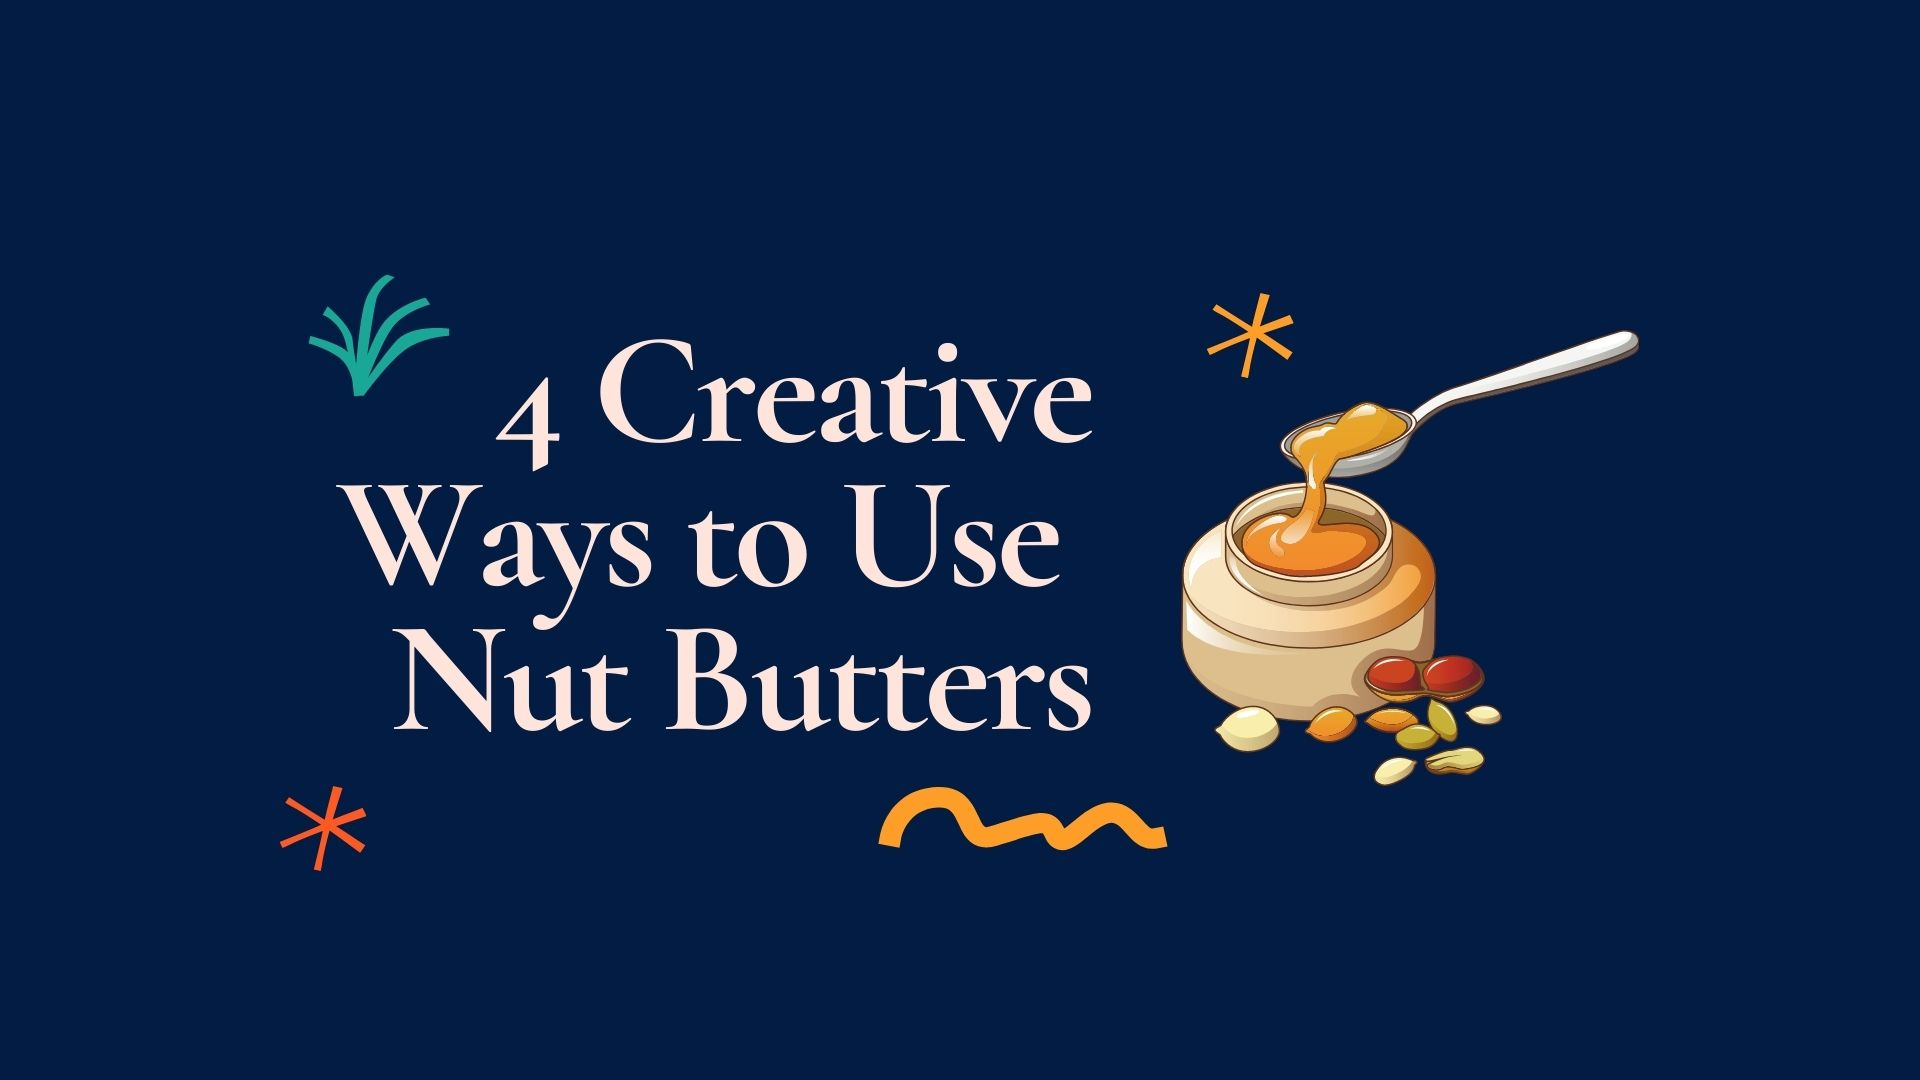 4 Creative Ways To Use Nut Butters